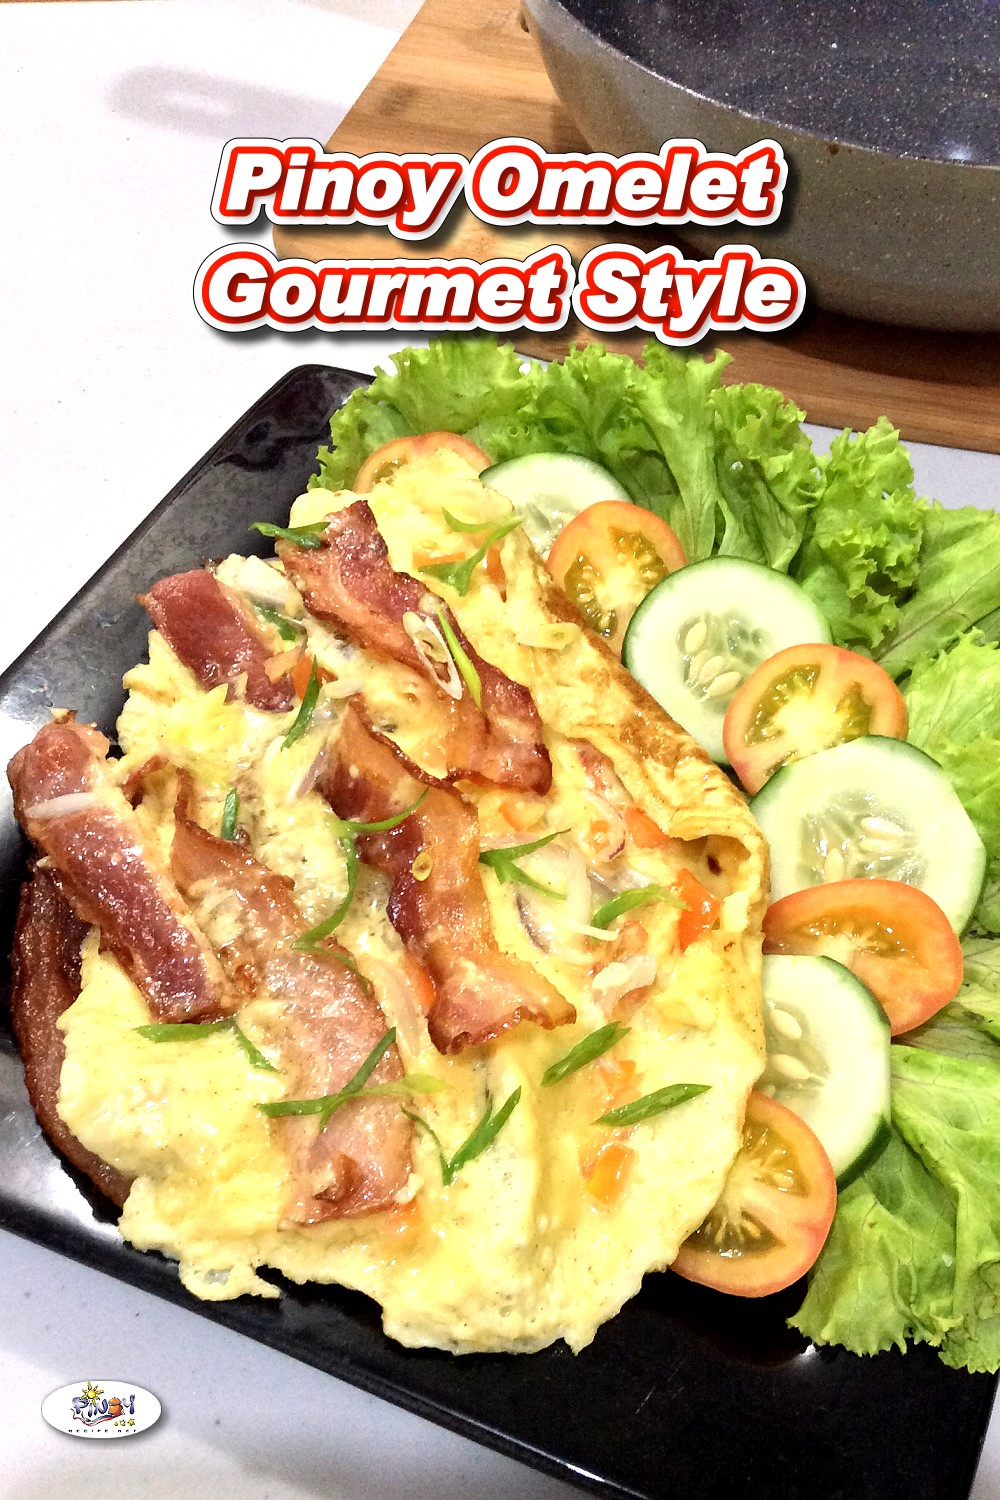 Pinoy Omelet Gourmet Style